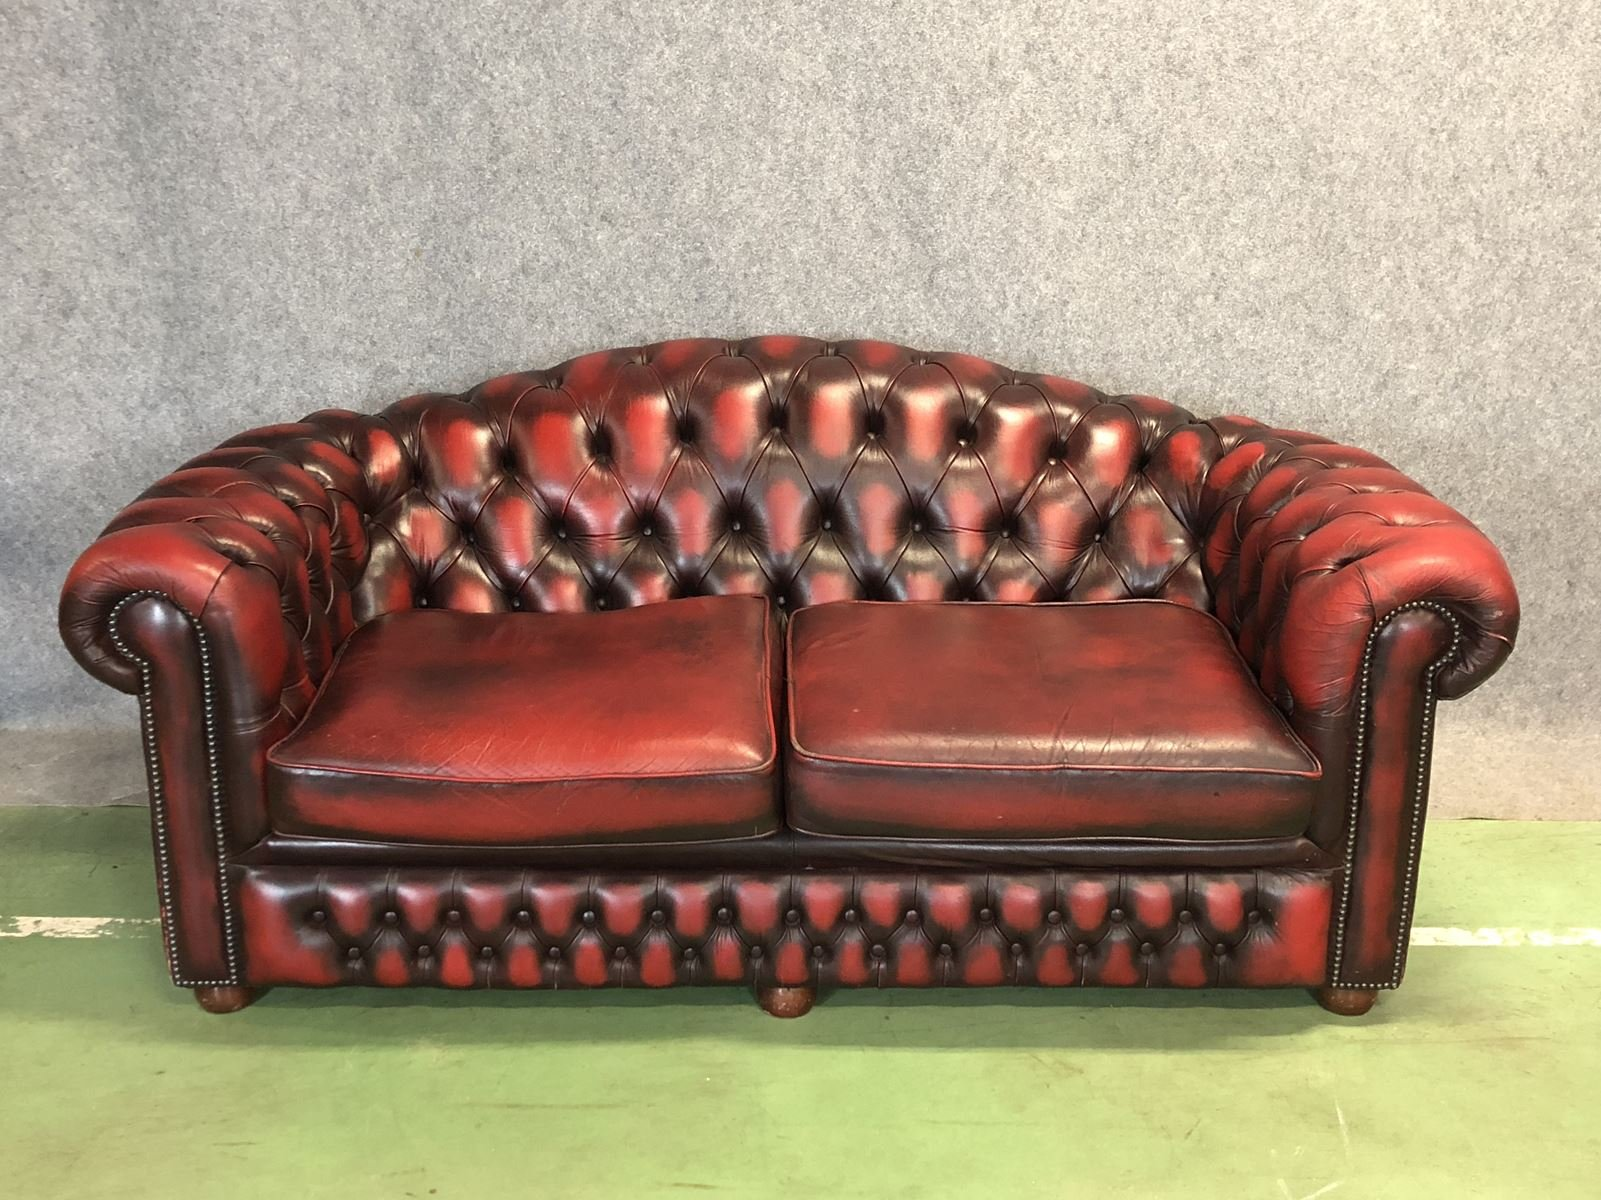 Three Seater Red Chesterfield Sofa 1970s